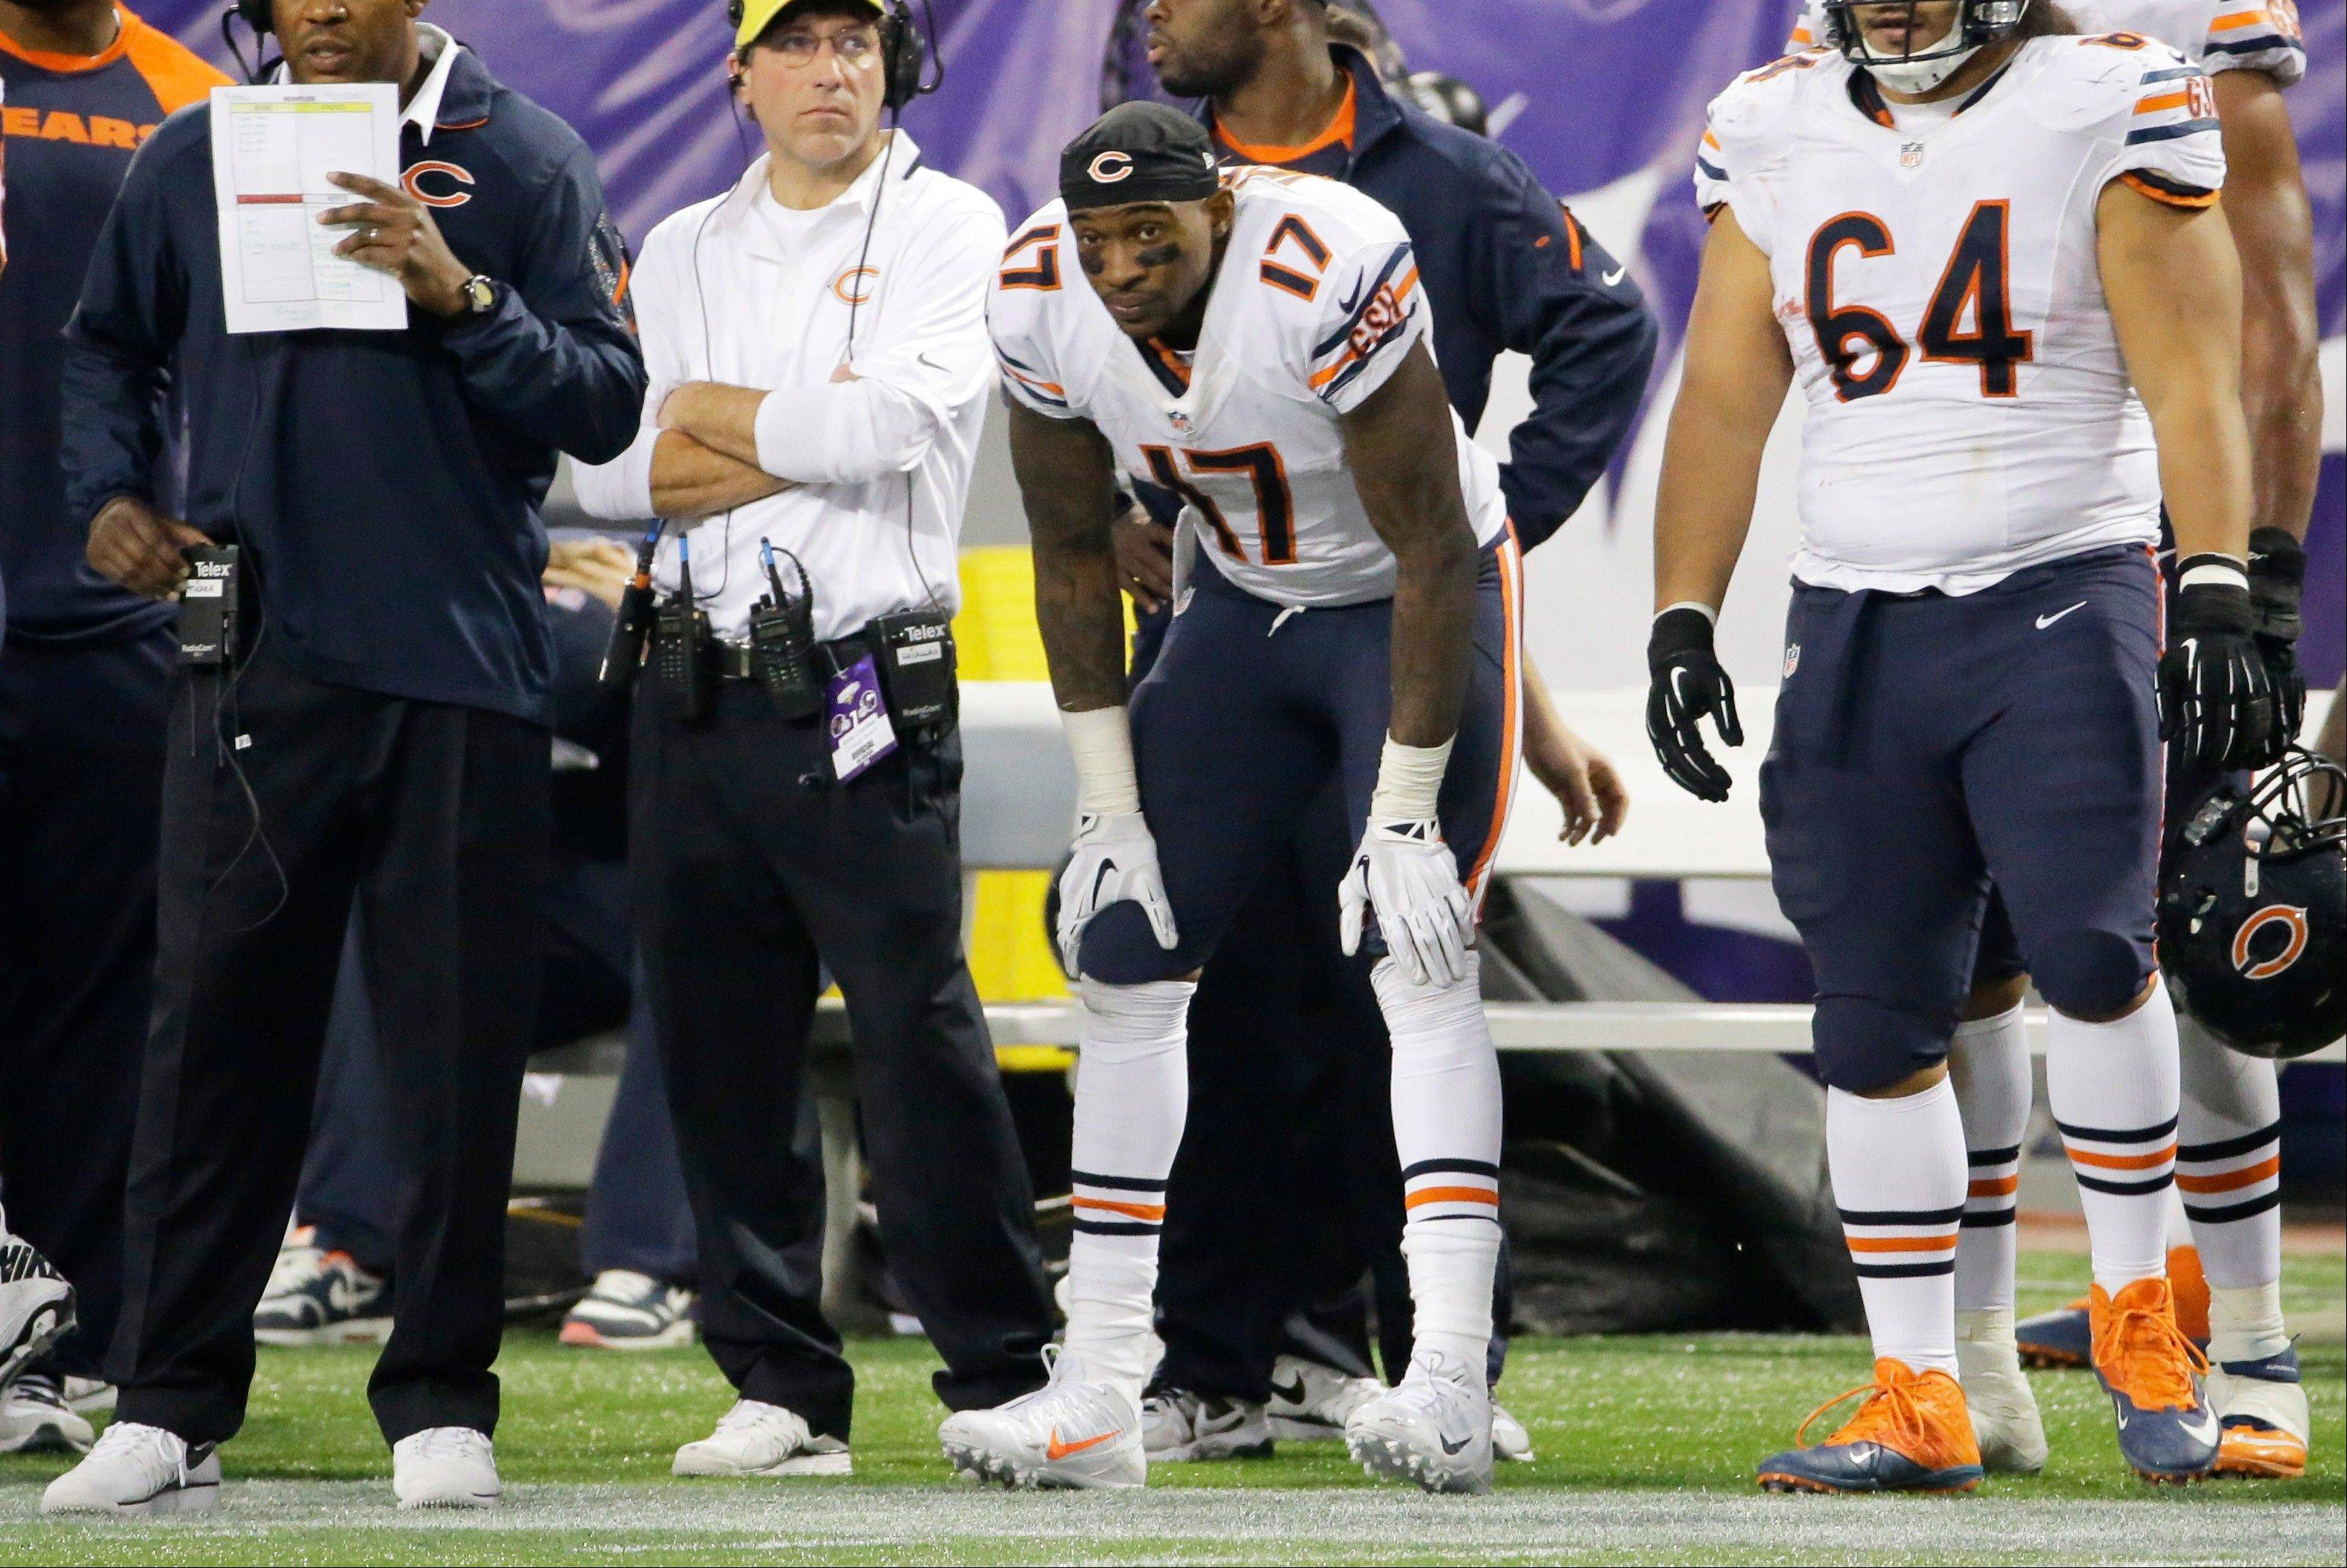 Chicago Bears wide receiver Alshon Jeffery (17) stands on the sideline during overtime. The Vikings won 23-20.